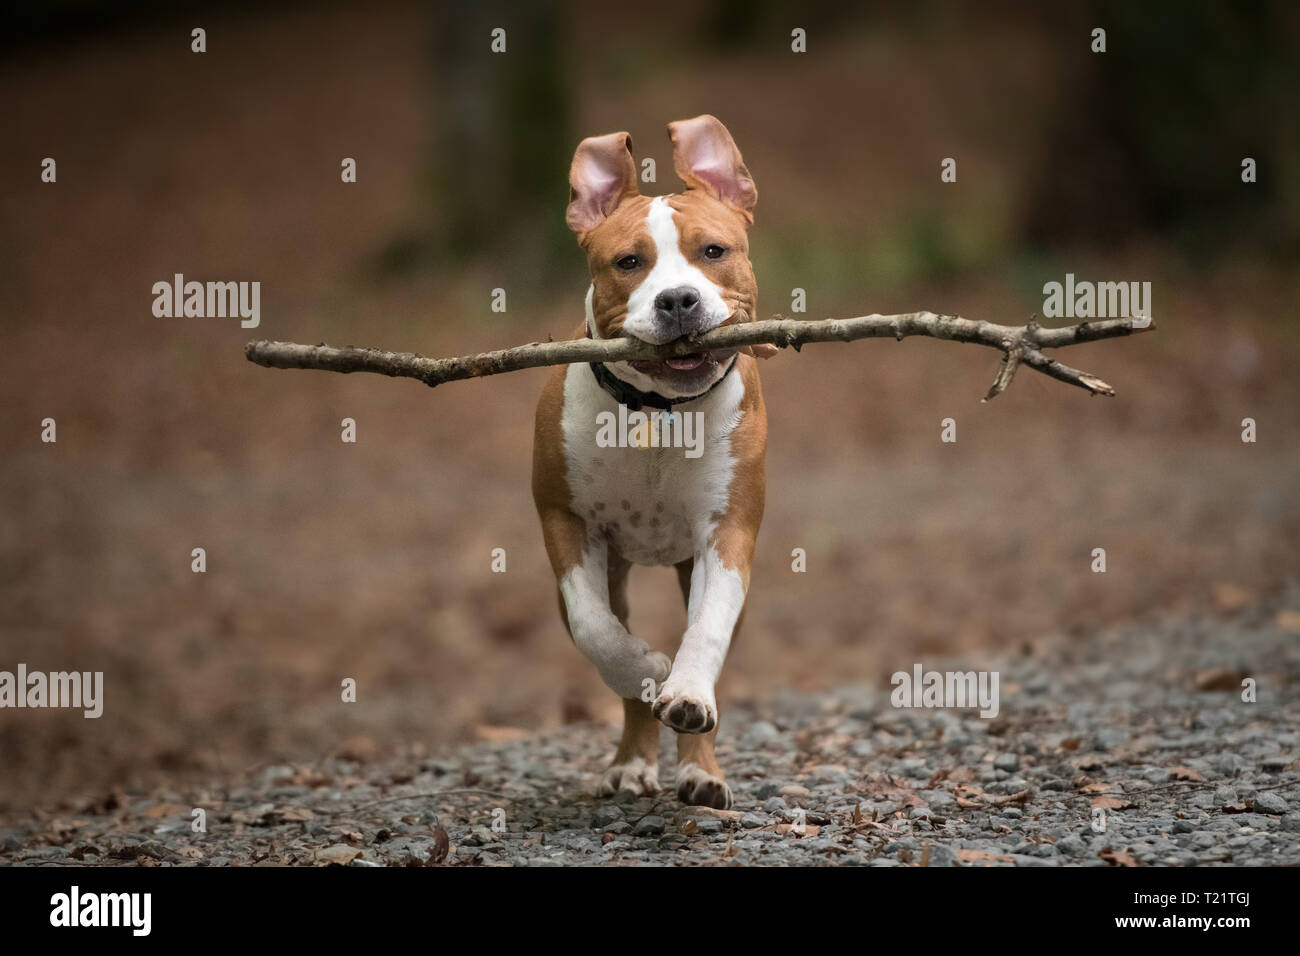 American Staffordshire Terrier puppy playing in forest. - Stock Image